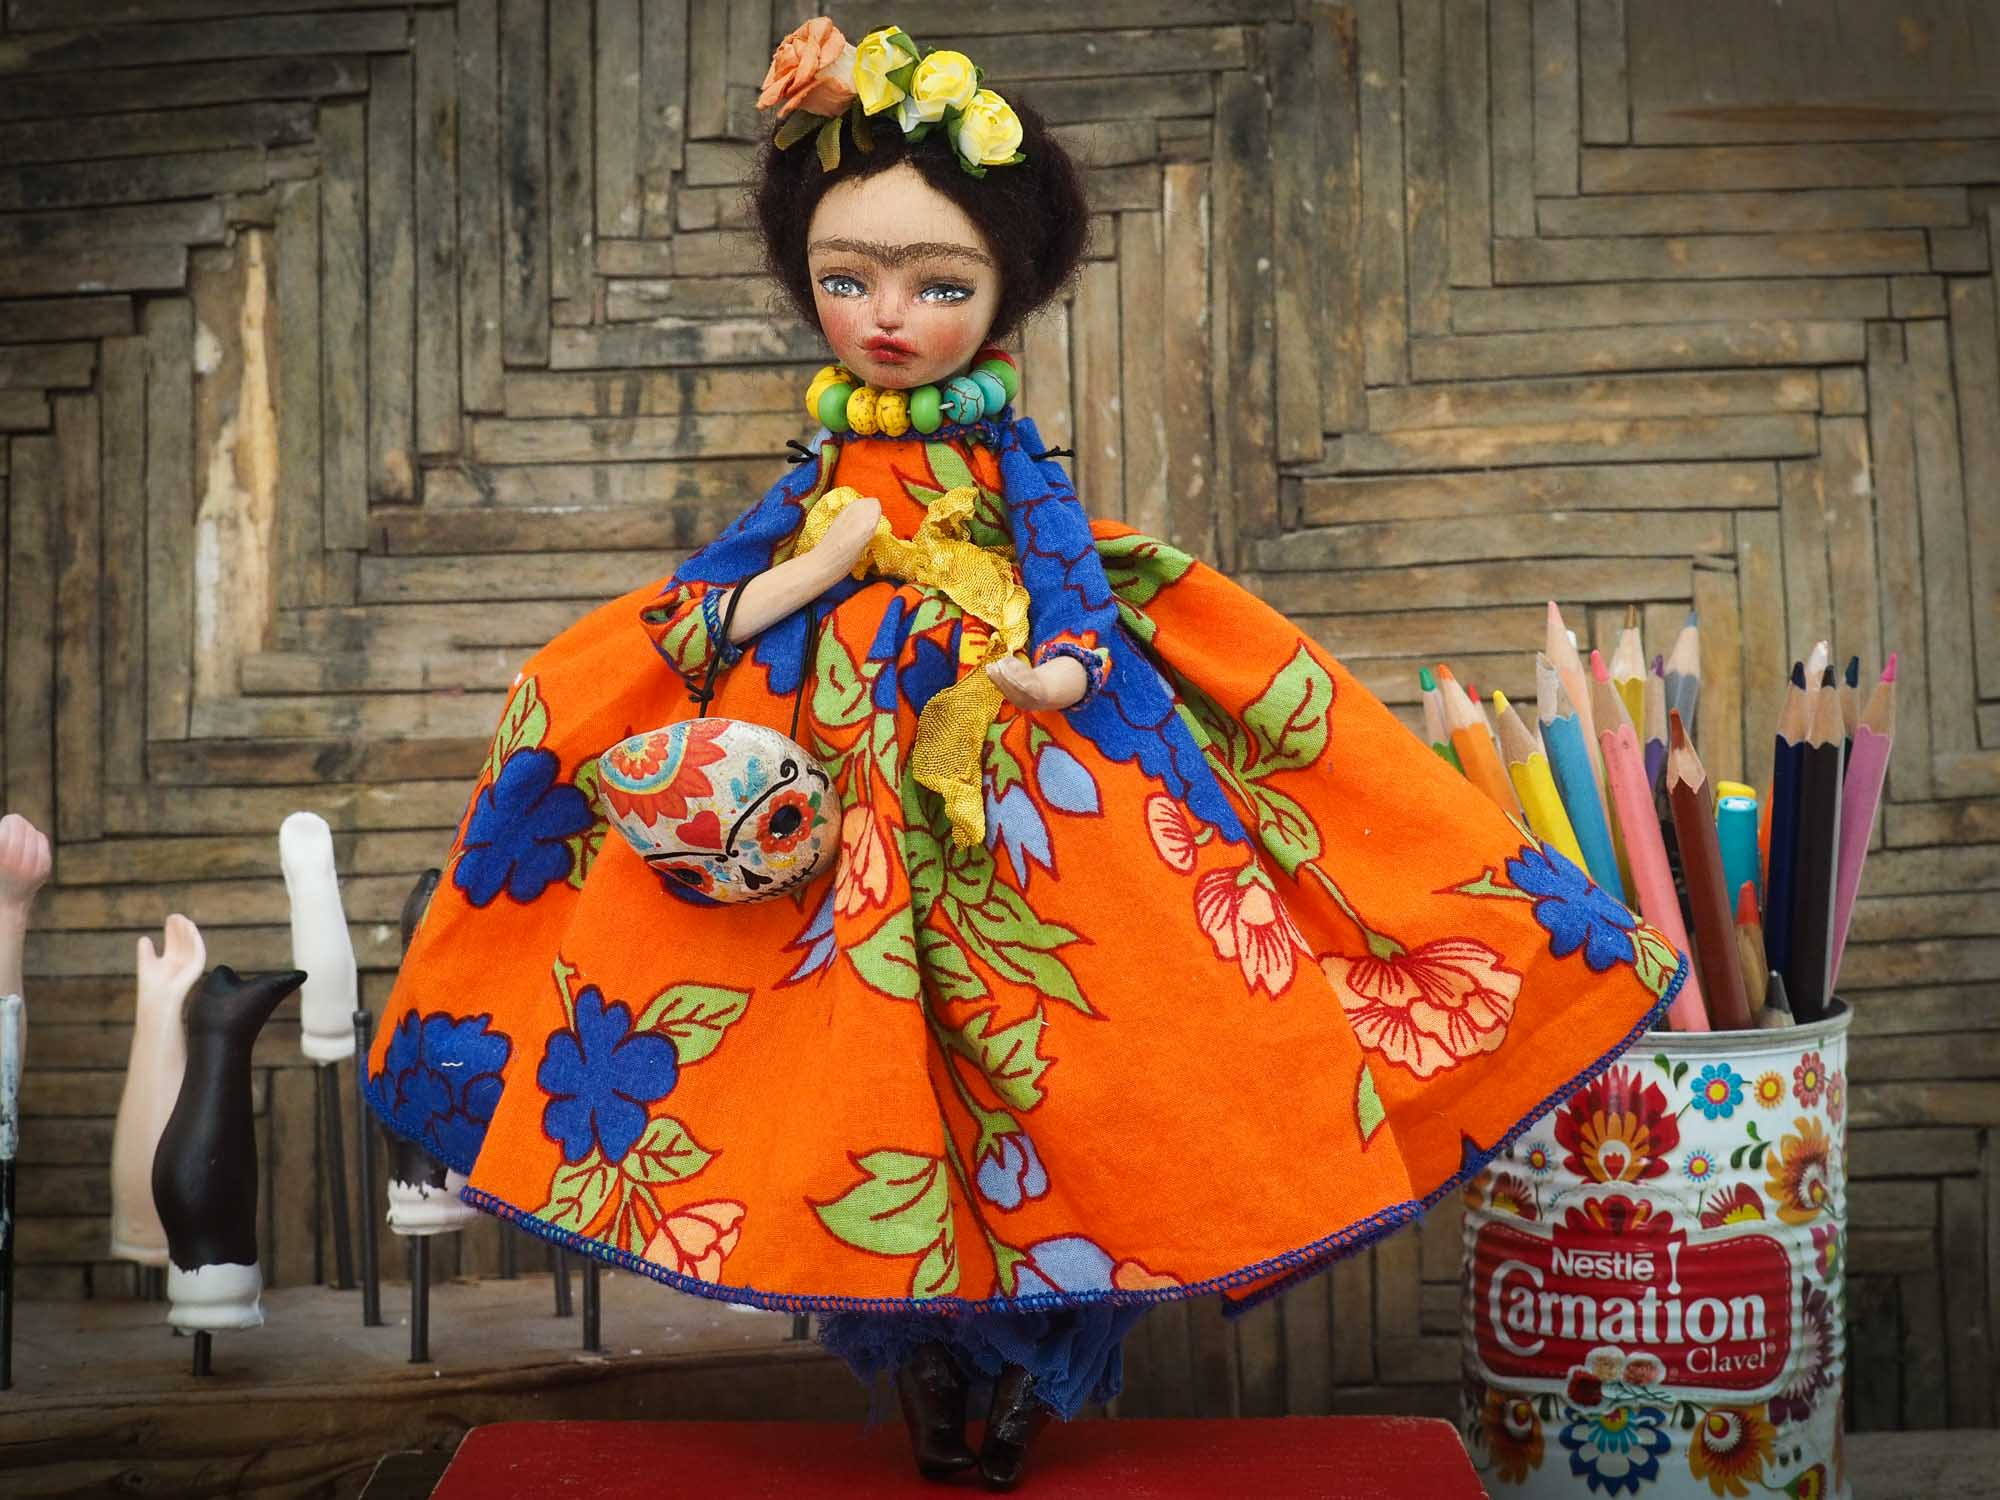 A beautiful handmade art doll by Danita, inspired by Mexican Folk art, Frida Kahlo and The Day Of the Dead. She wears a colorful native motif dress, an unmistakable unibrow, a colorful Dia De los Muertos Catrina skull mask and the signature amazing eyes of Danita Art.